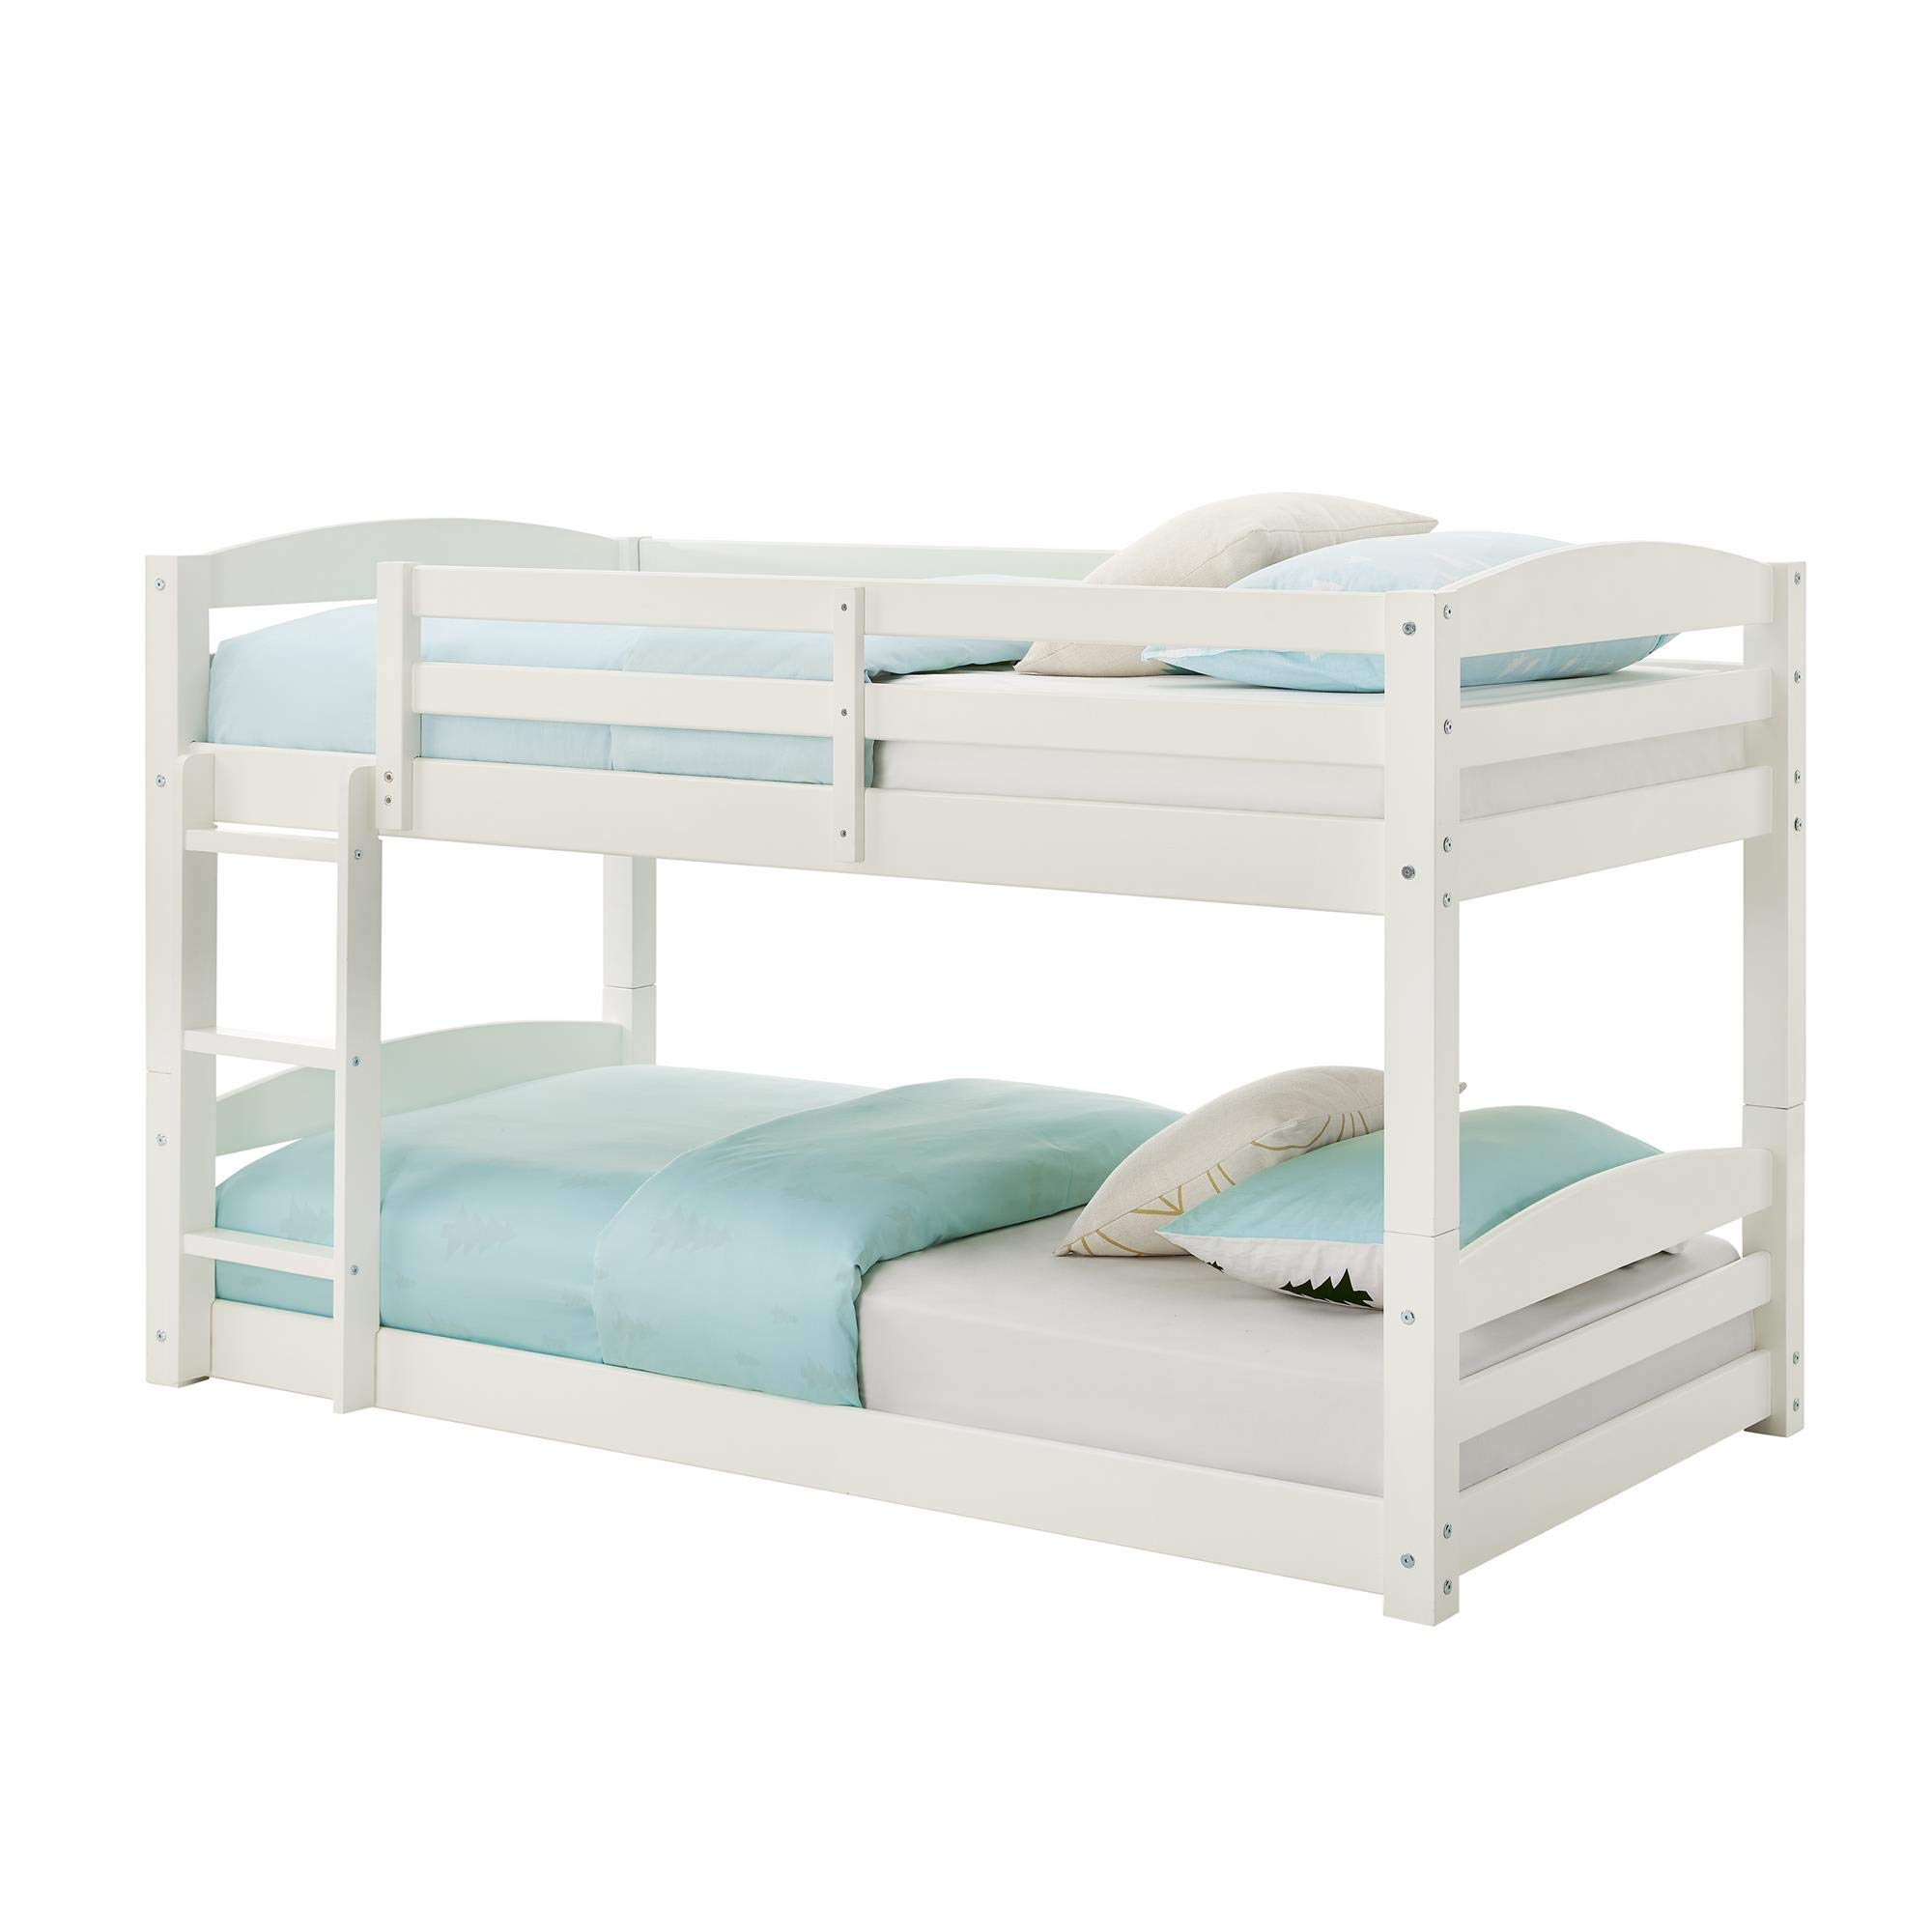 Max & Finn Bunk Bed, White, Black by Max & Finn